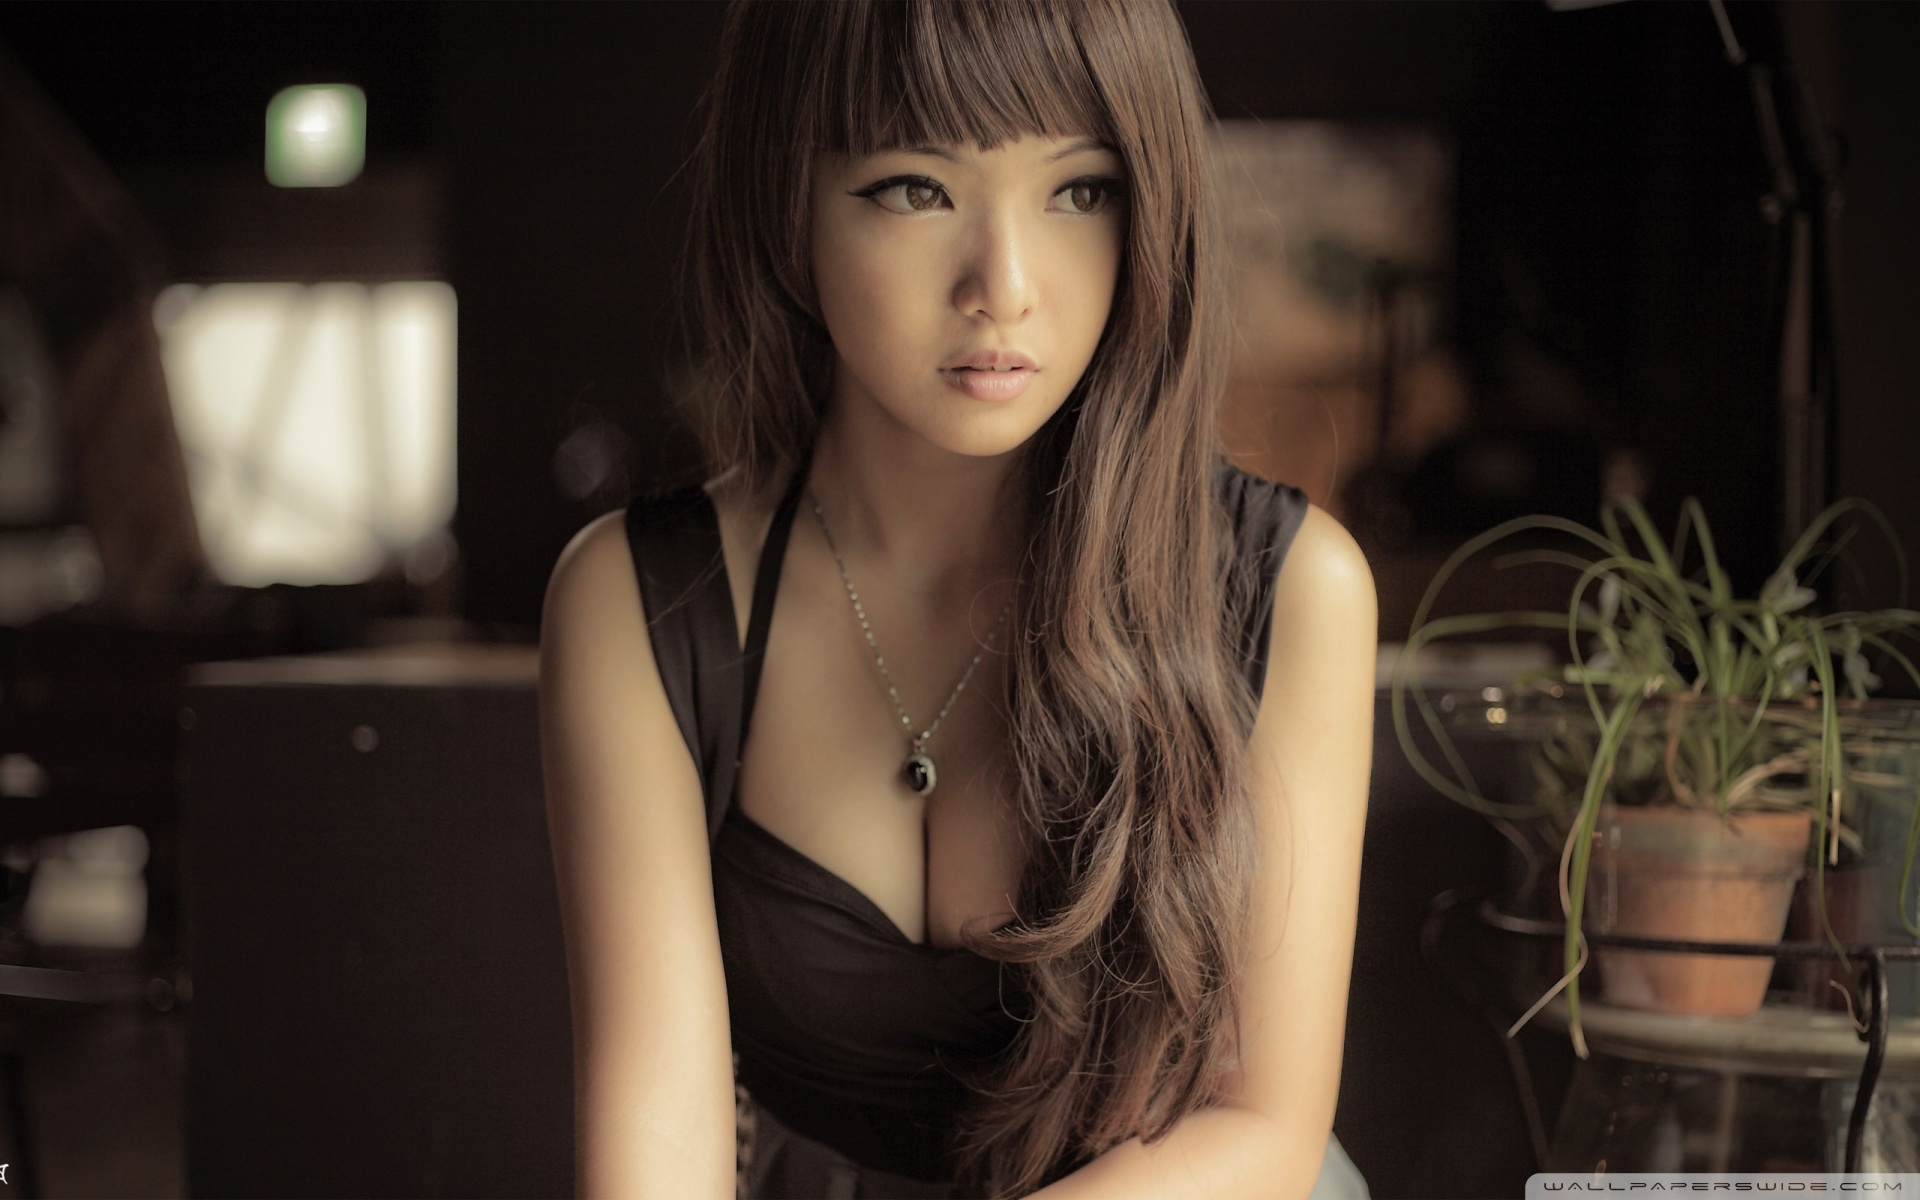 Beautiful Asian Girl HD desktop wallpaper : High Definition